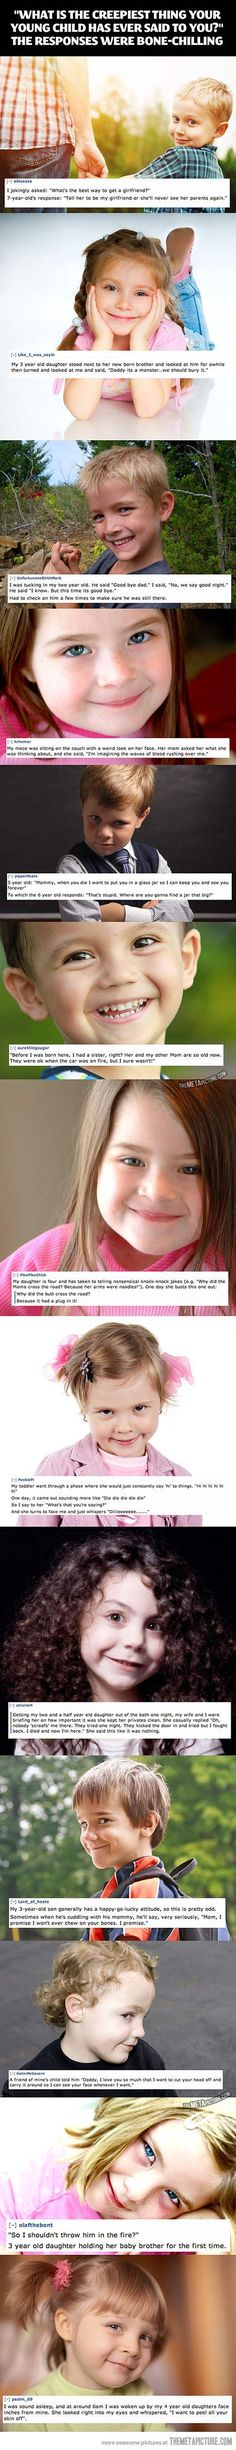 The Creepy Things Little Kids Say...oh my god that's scary!